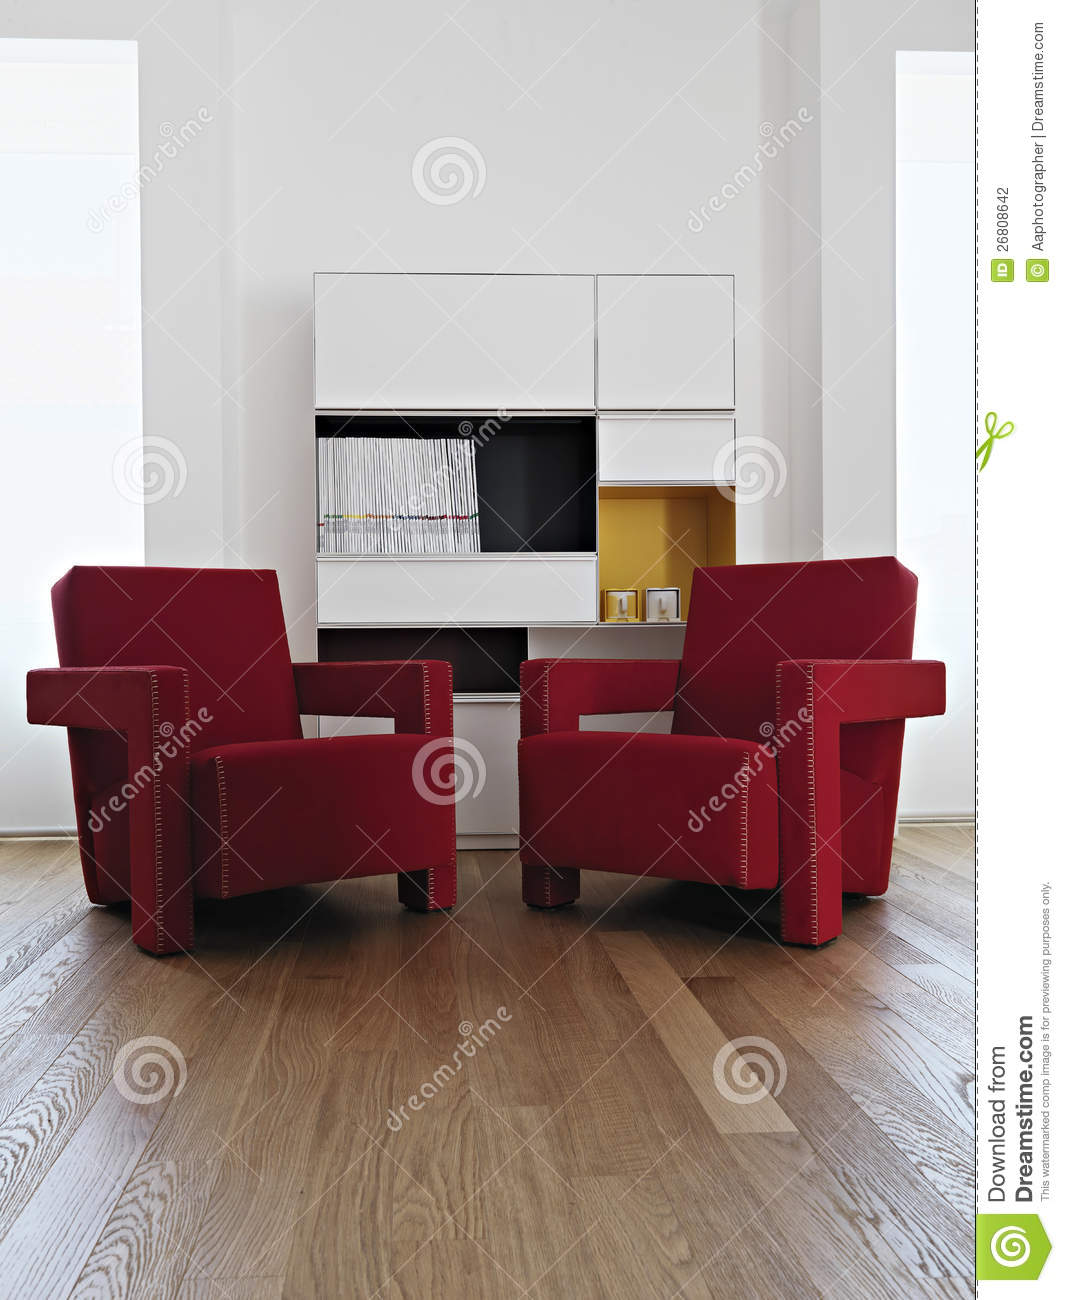 Red Red Armchairs In The Modern Living Room Stock Photo ...